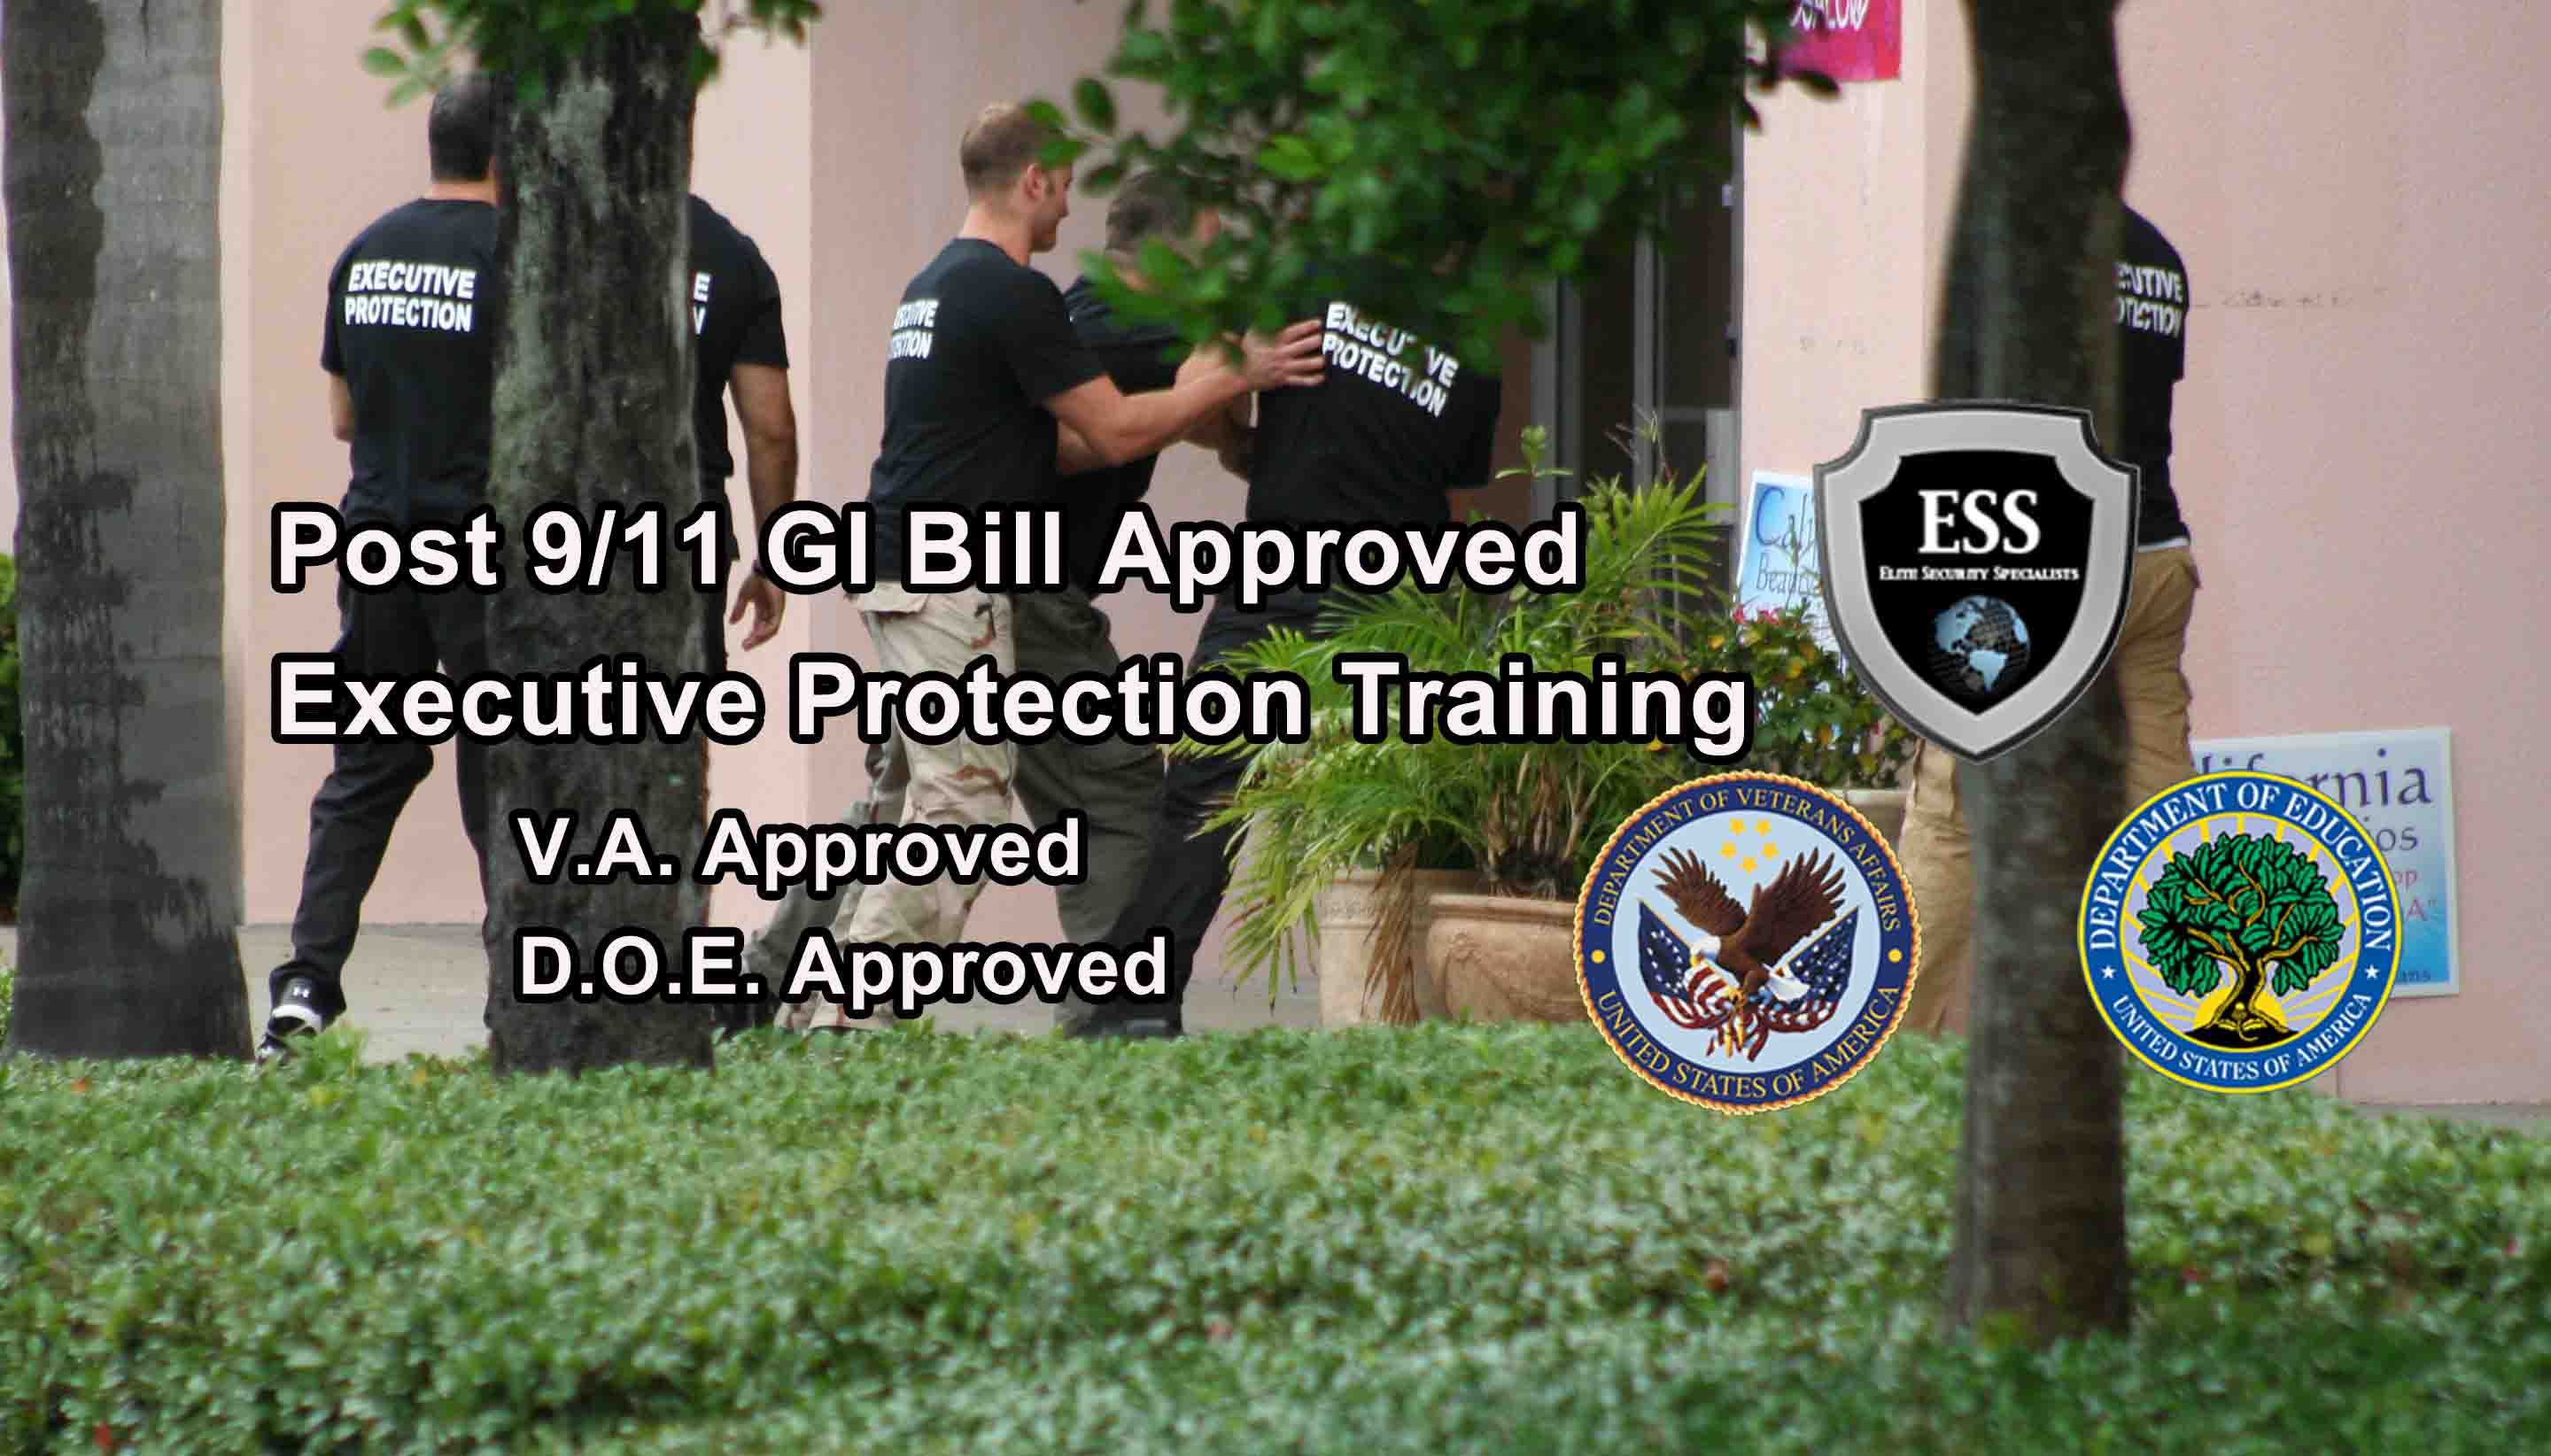 Post 9/11 G.I. Bill Bodyguard Training